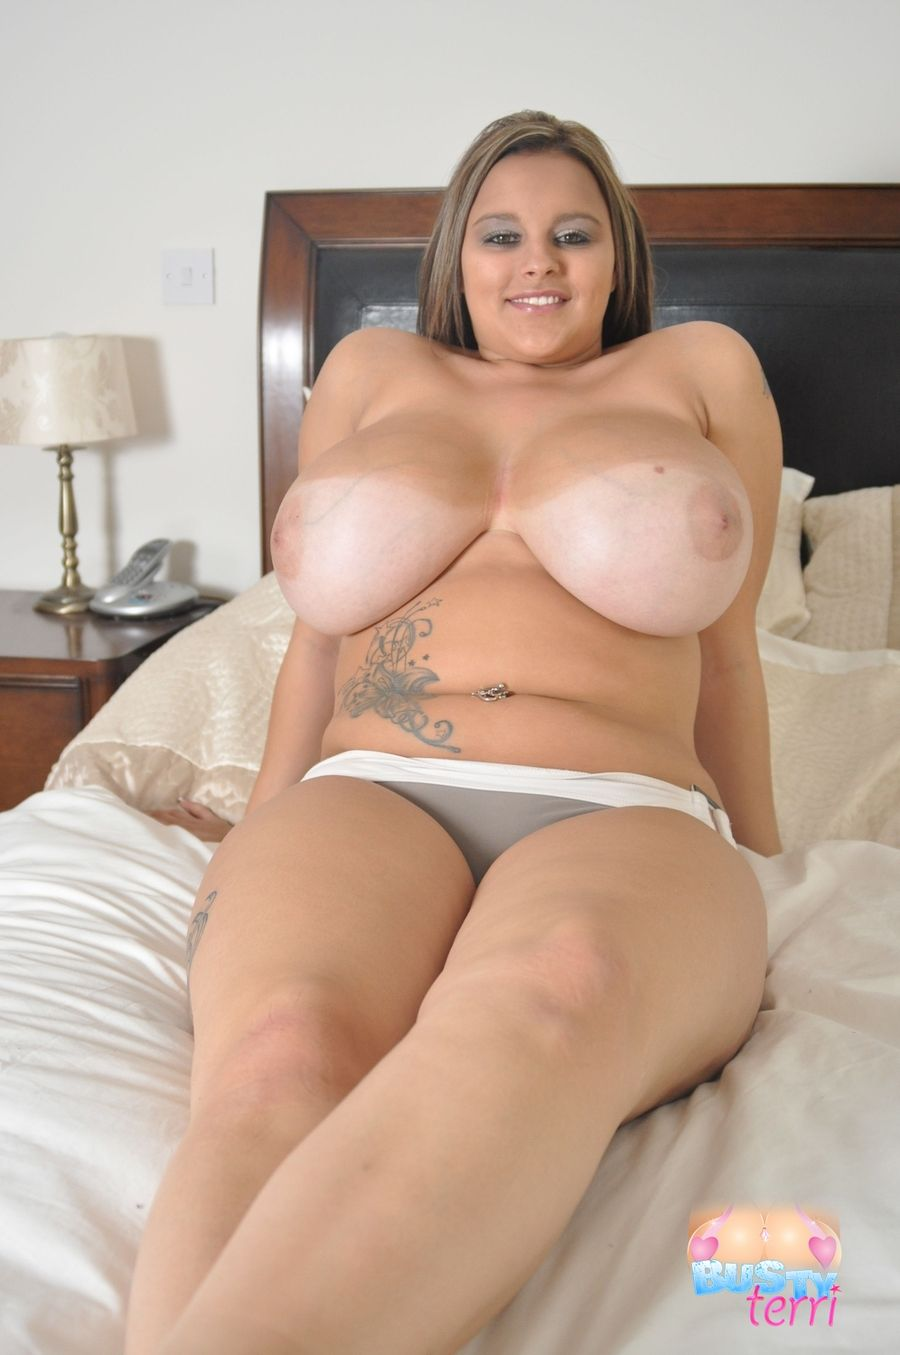 Terry jane oiled tits - 2 8